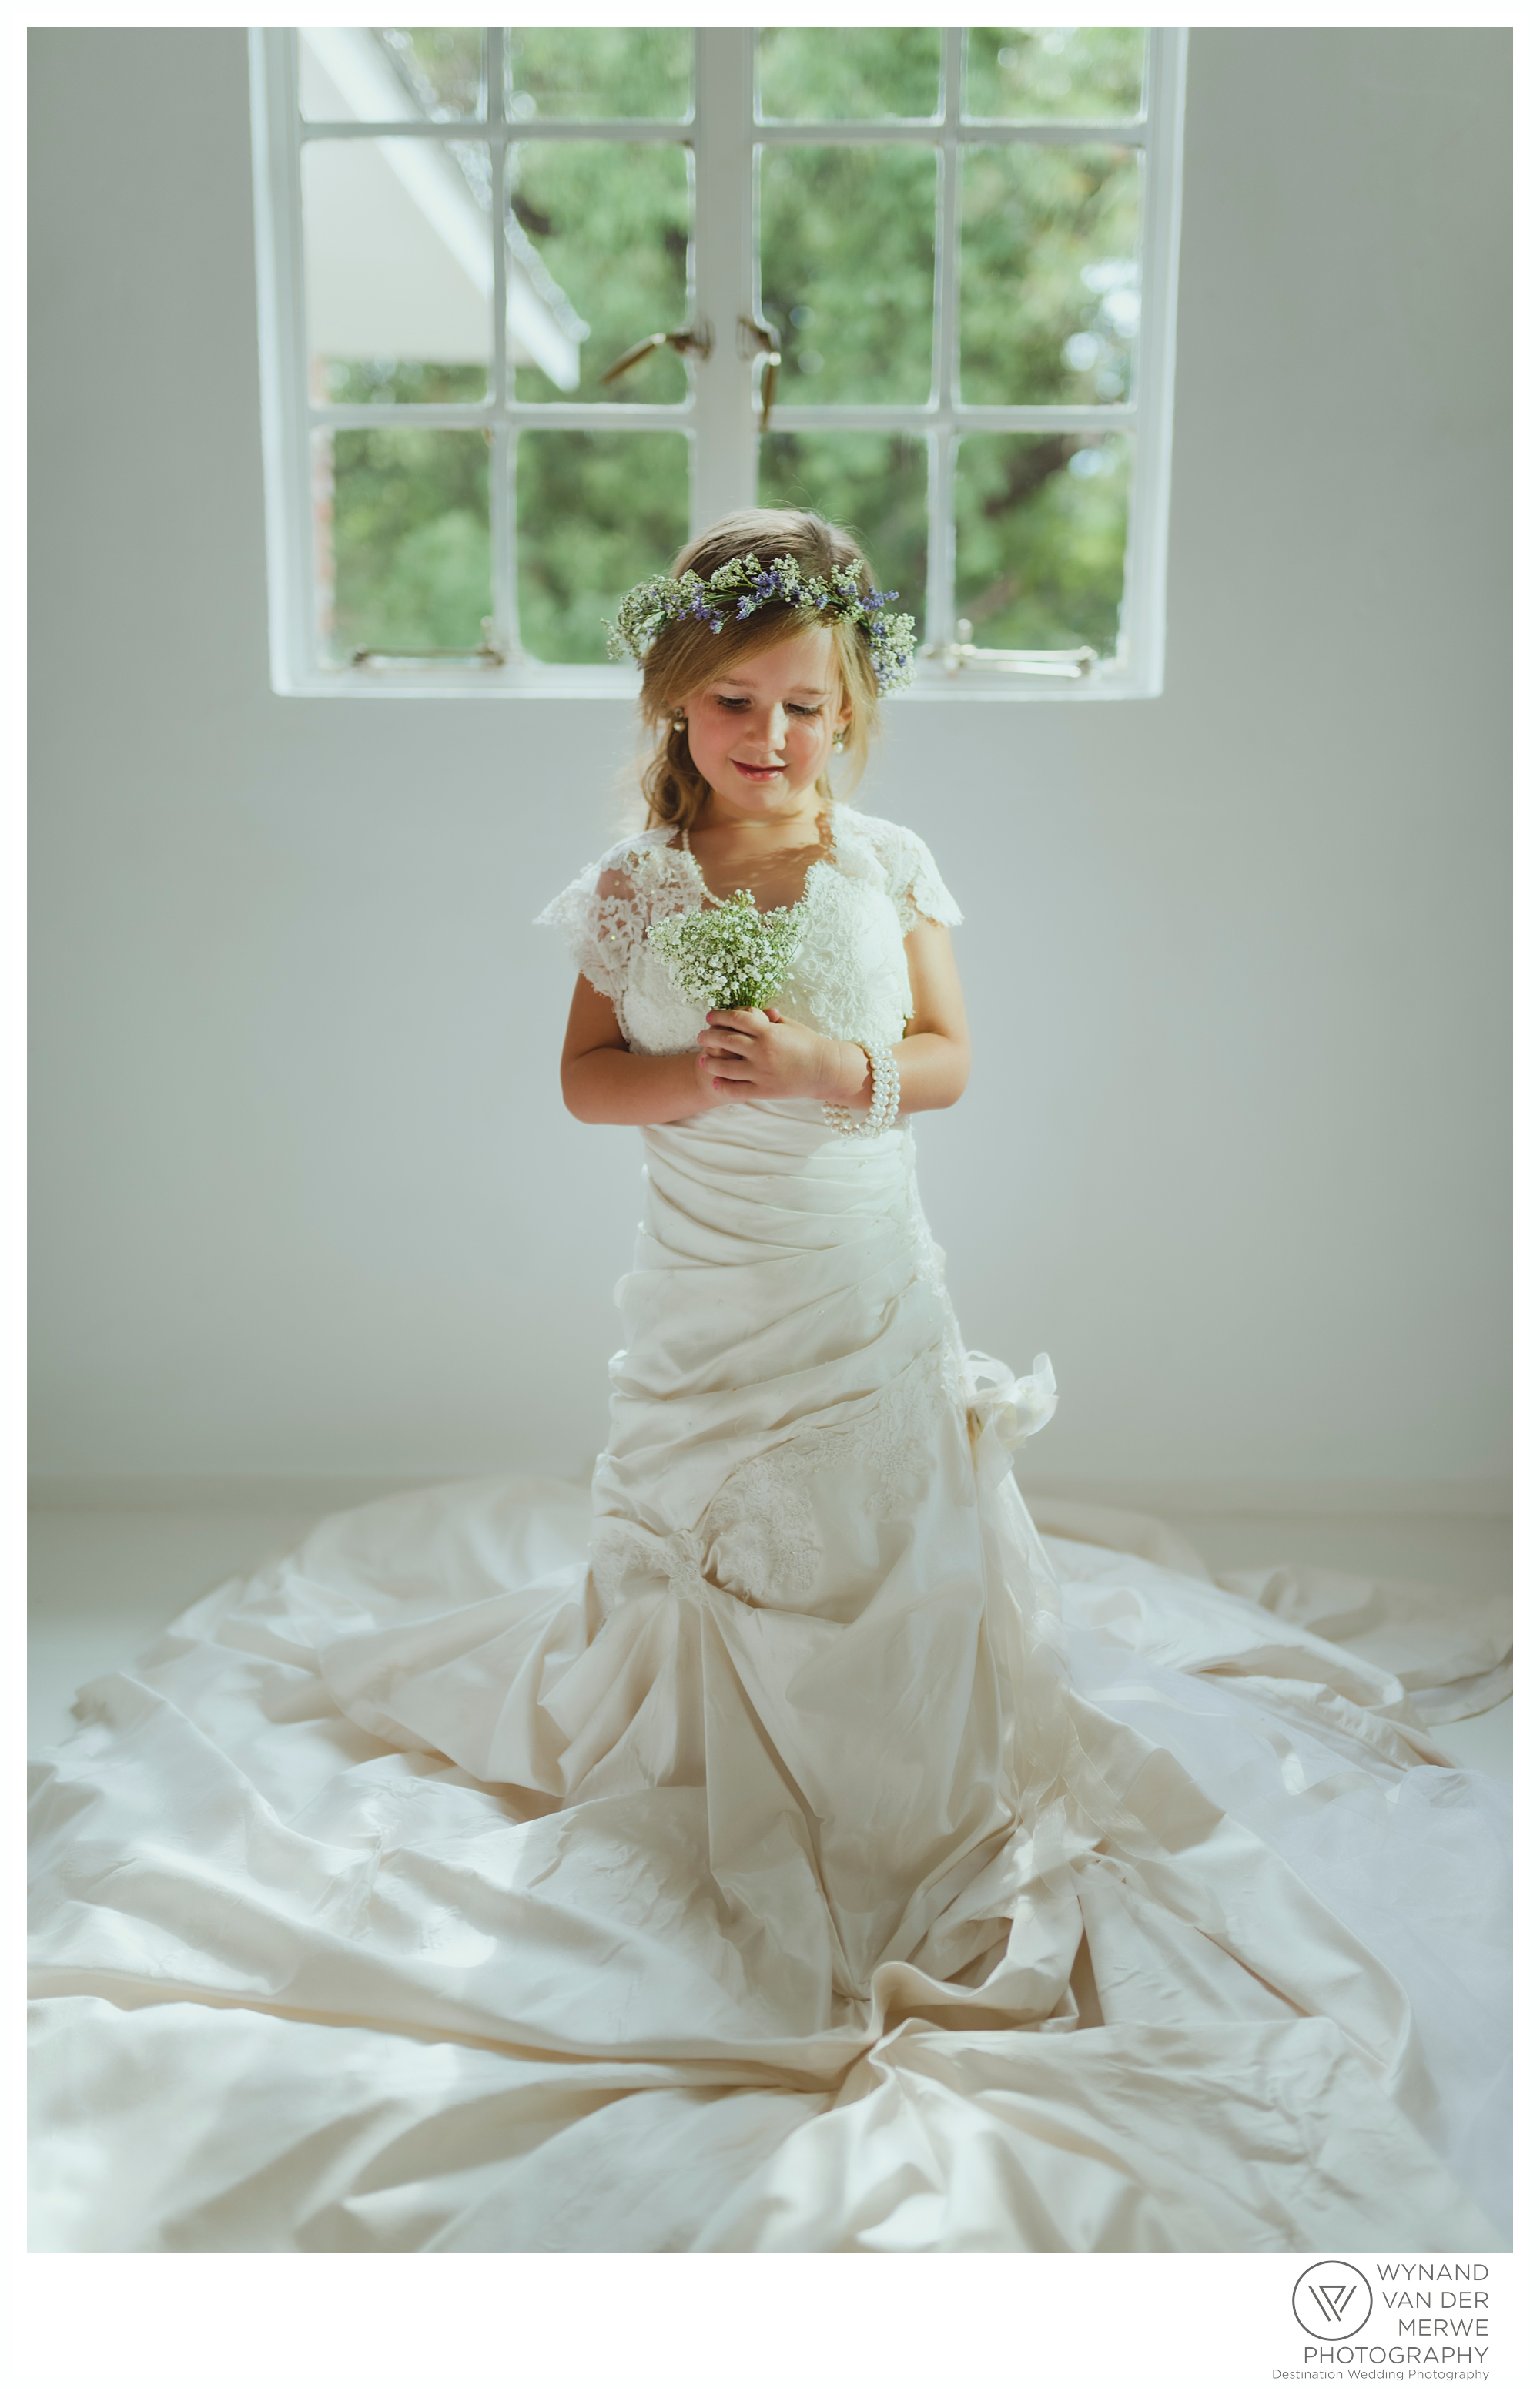 A little girl in her mom's wedding dress